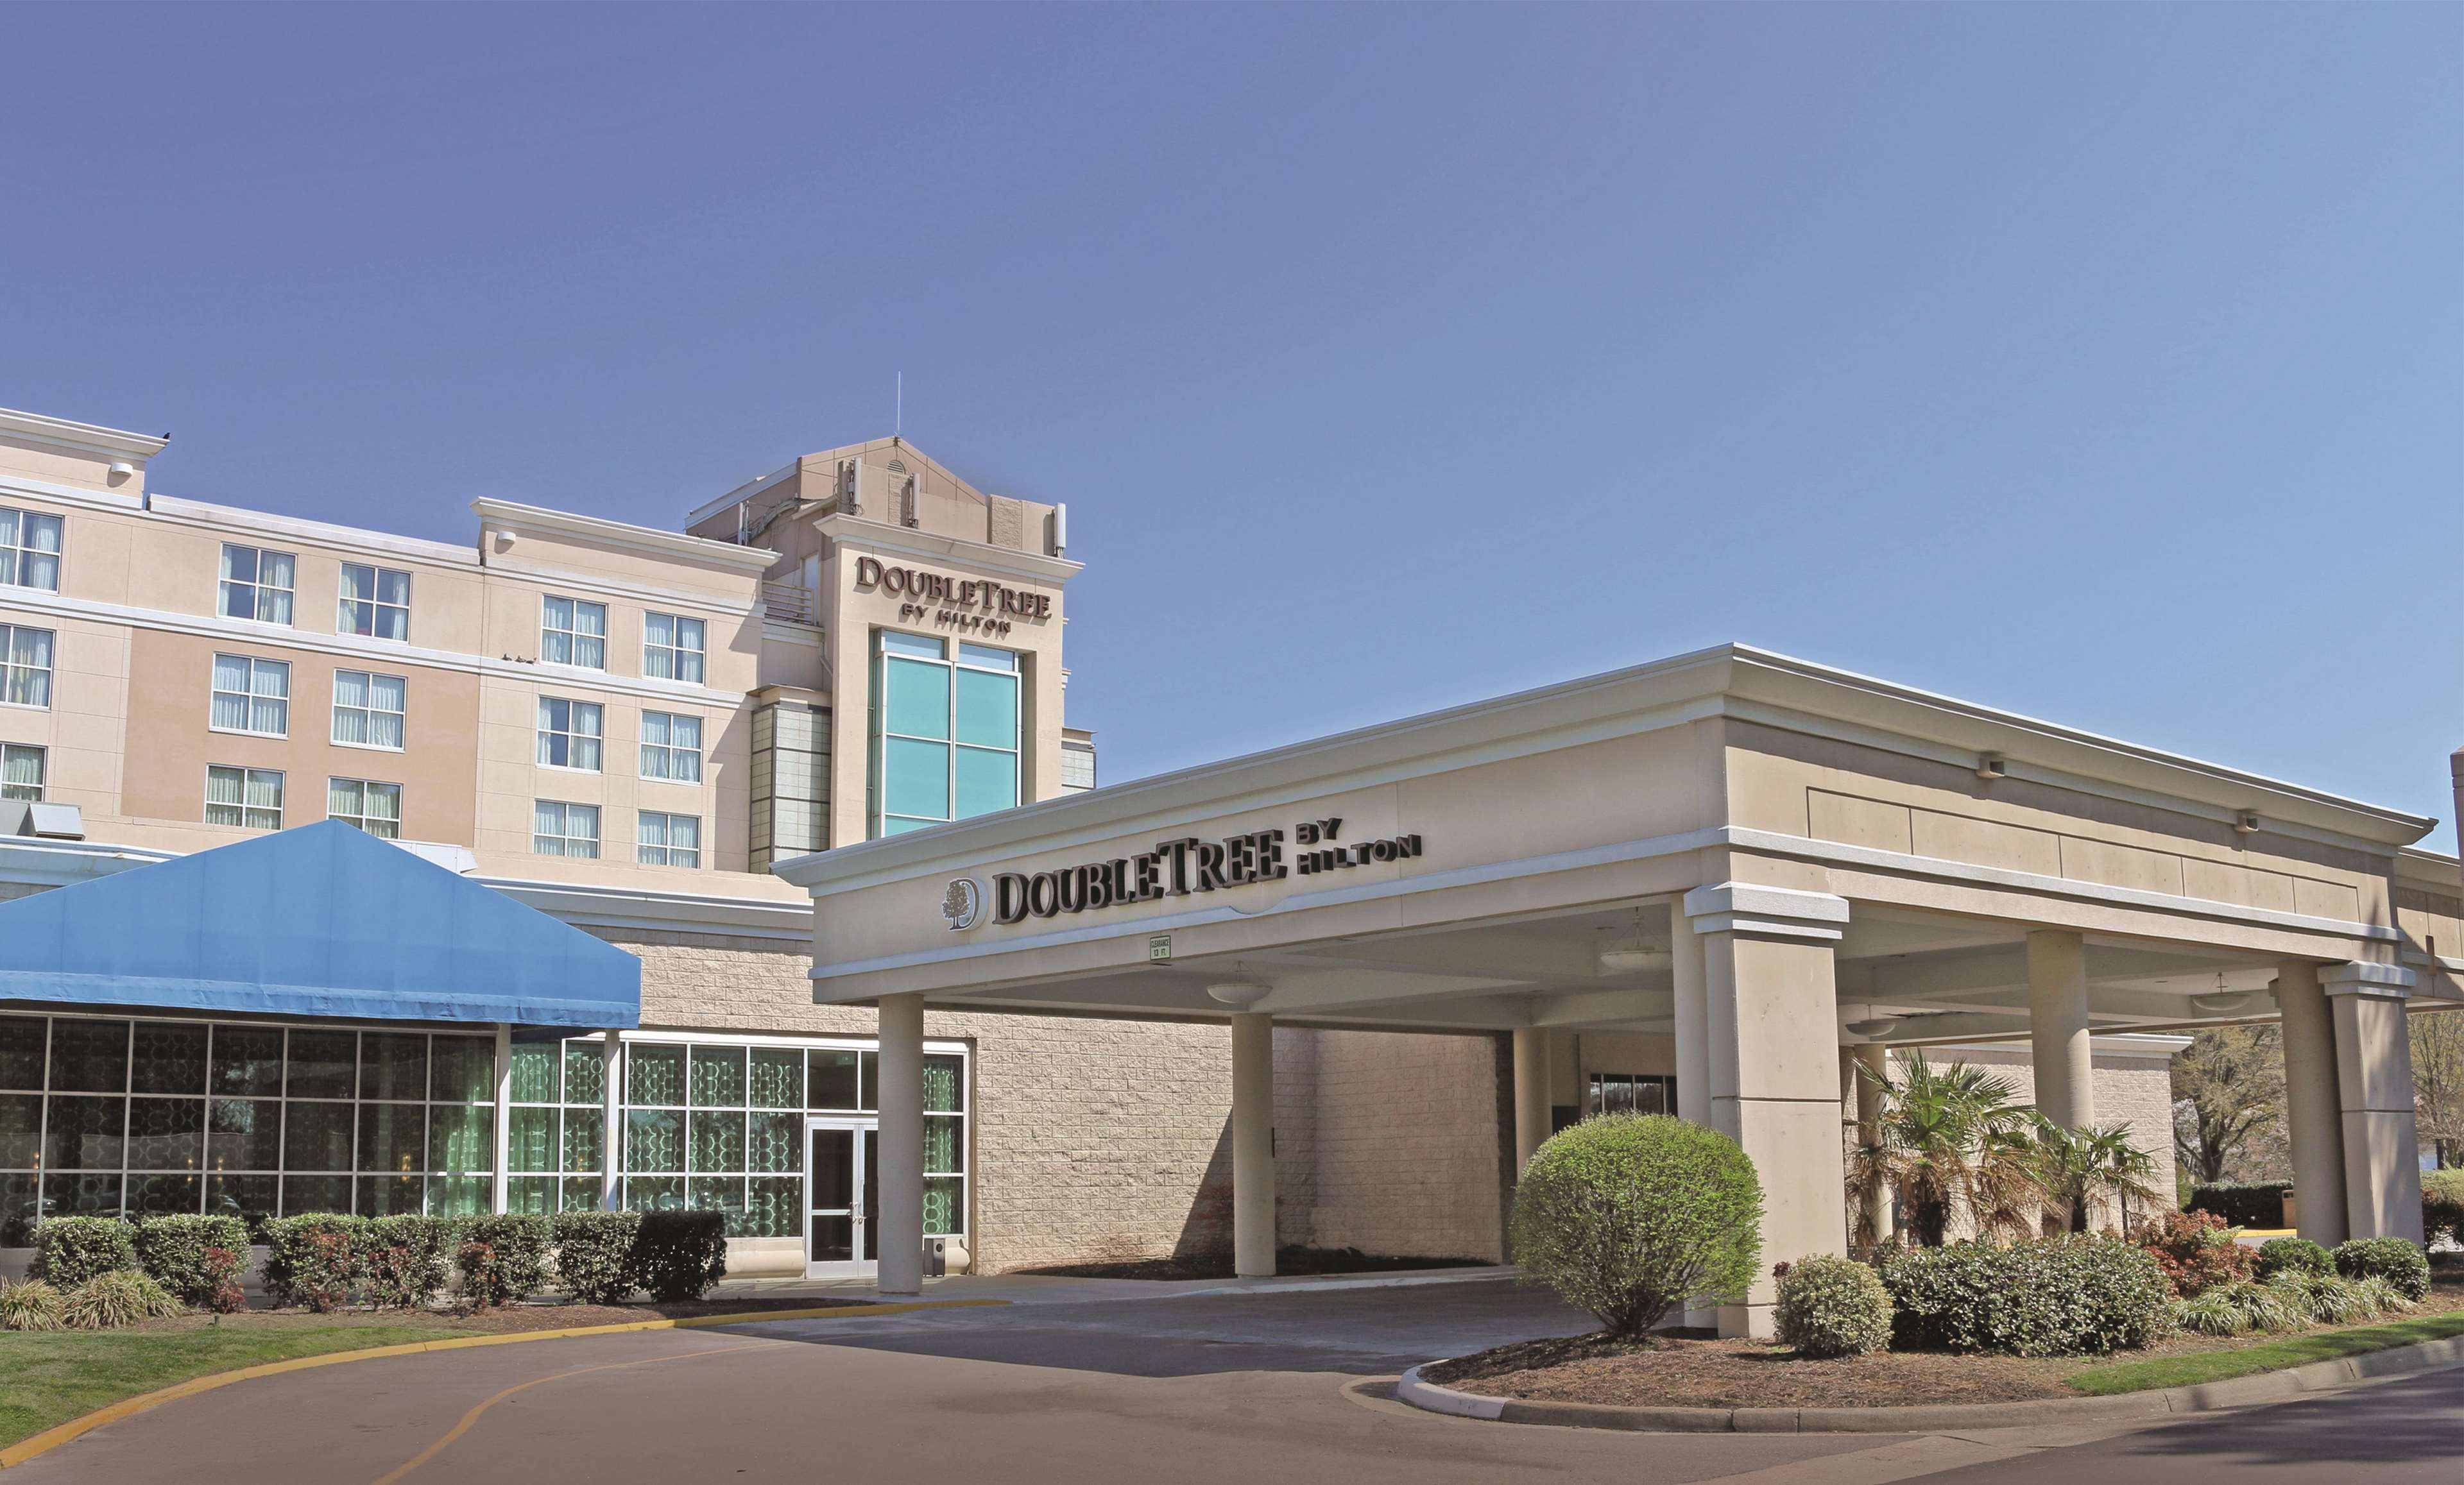 DoubleTree by Hilton Hotel Norfolk Airport image 0